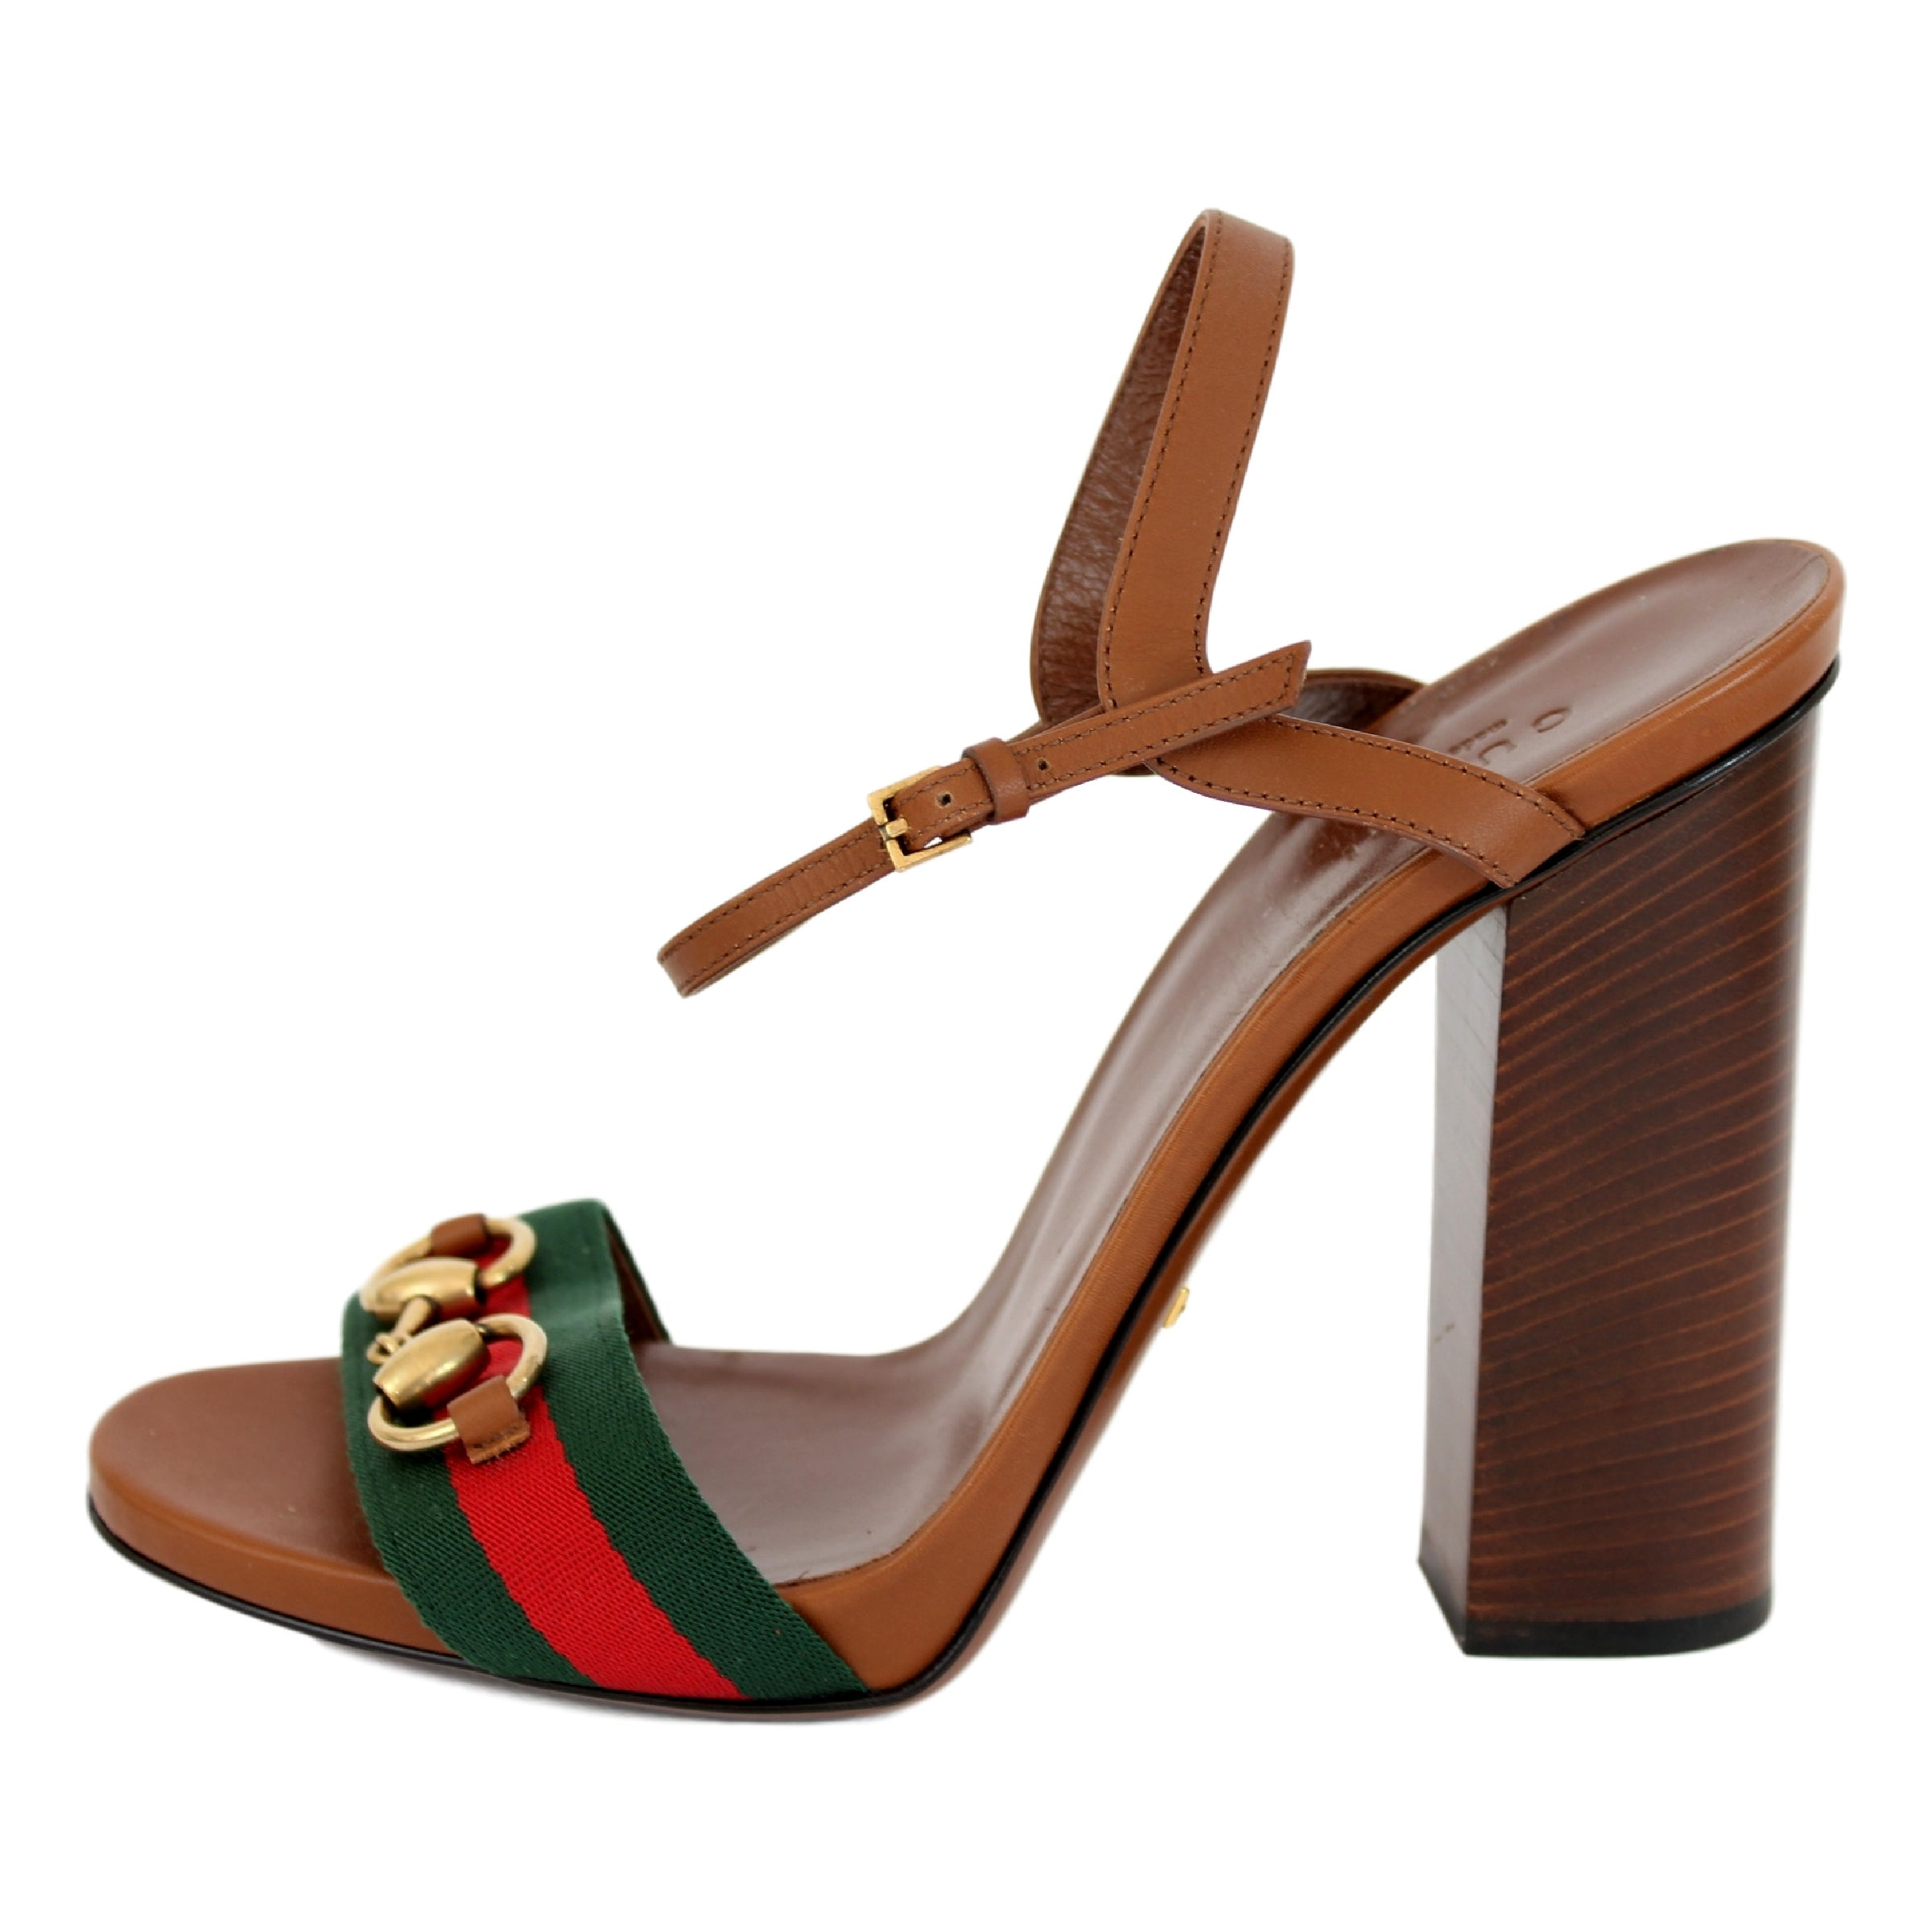 59f0b02004f3 New Gucci Lifford Brown Leather Canvas Sandals Heels Pump Shoes at 1stdibs